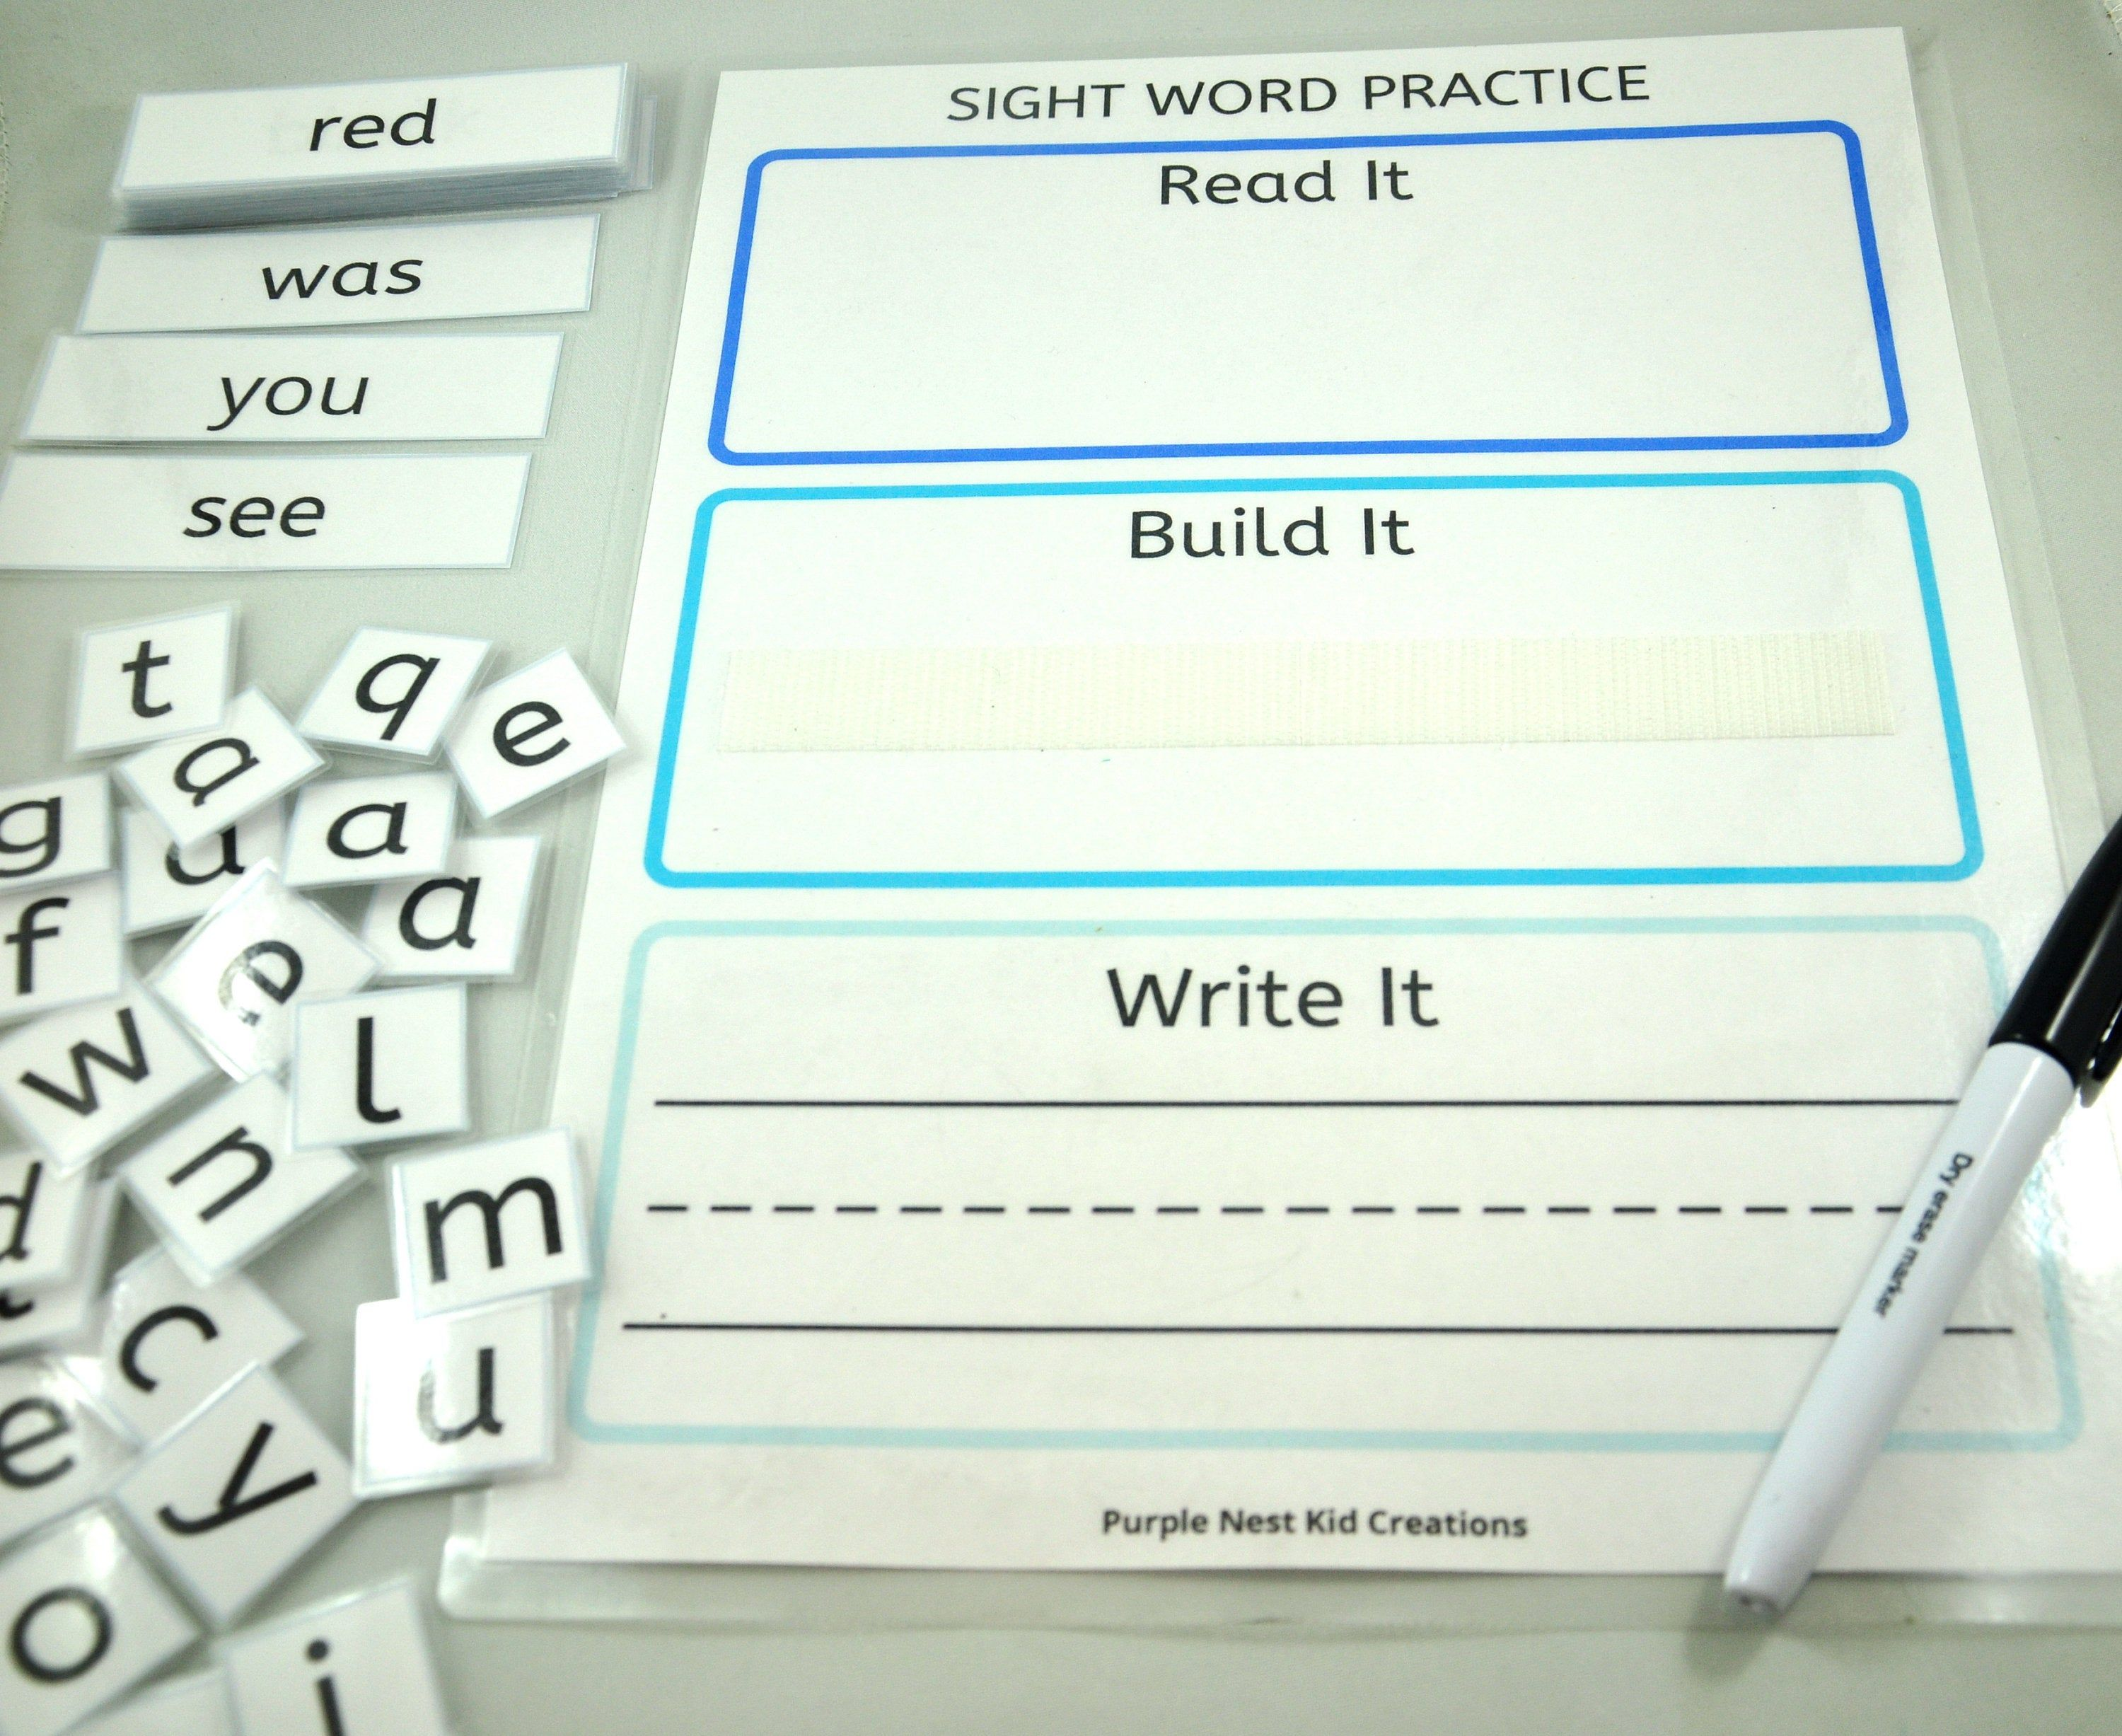 Sight Word Practice Worksheet Printable Spelling Game